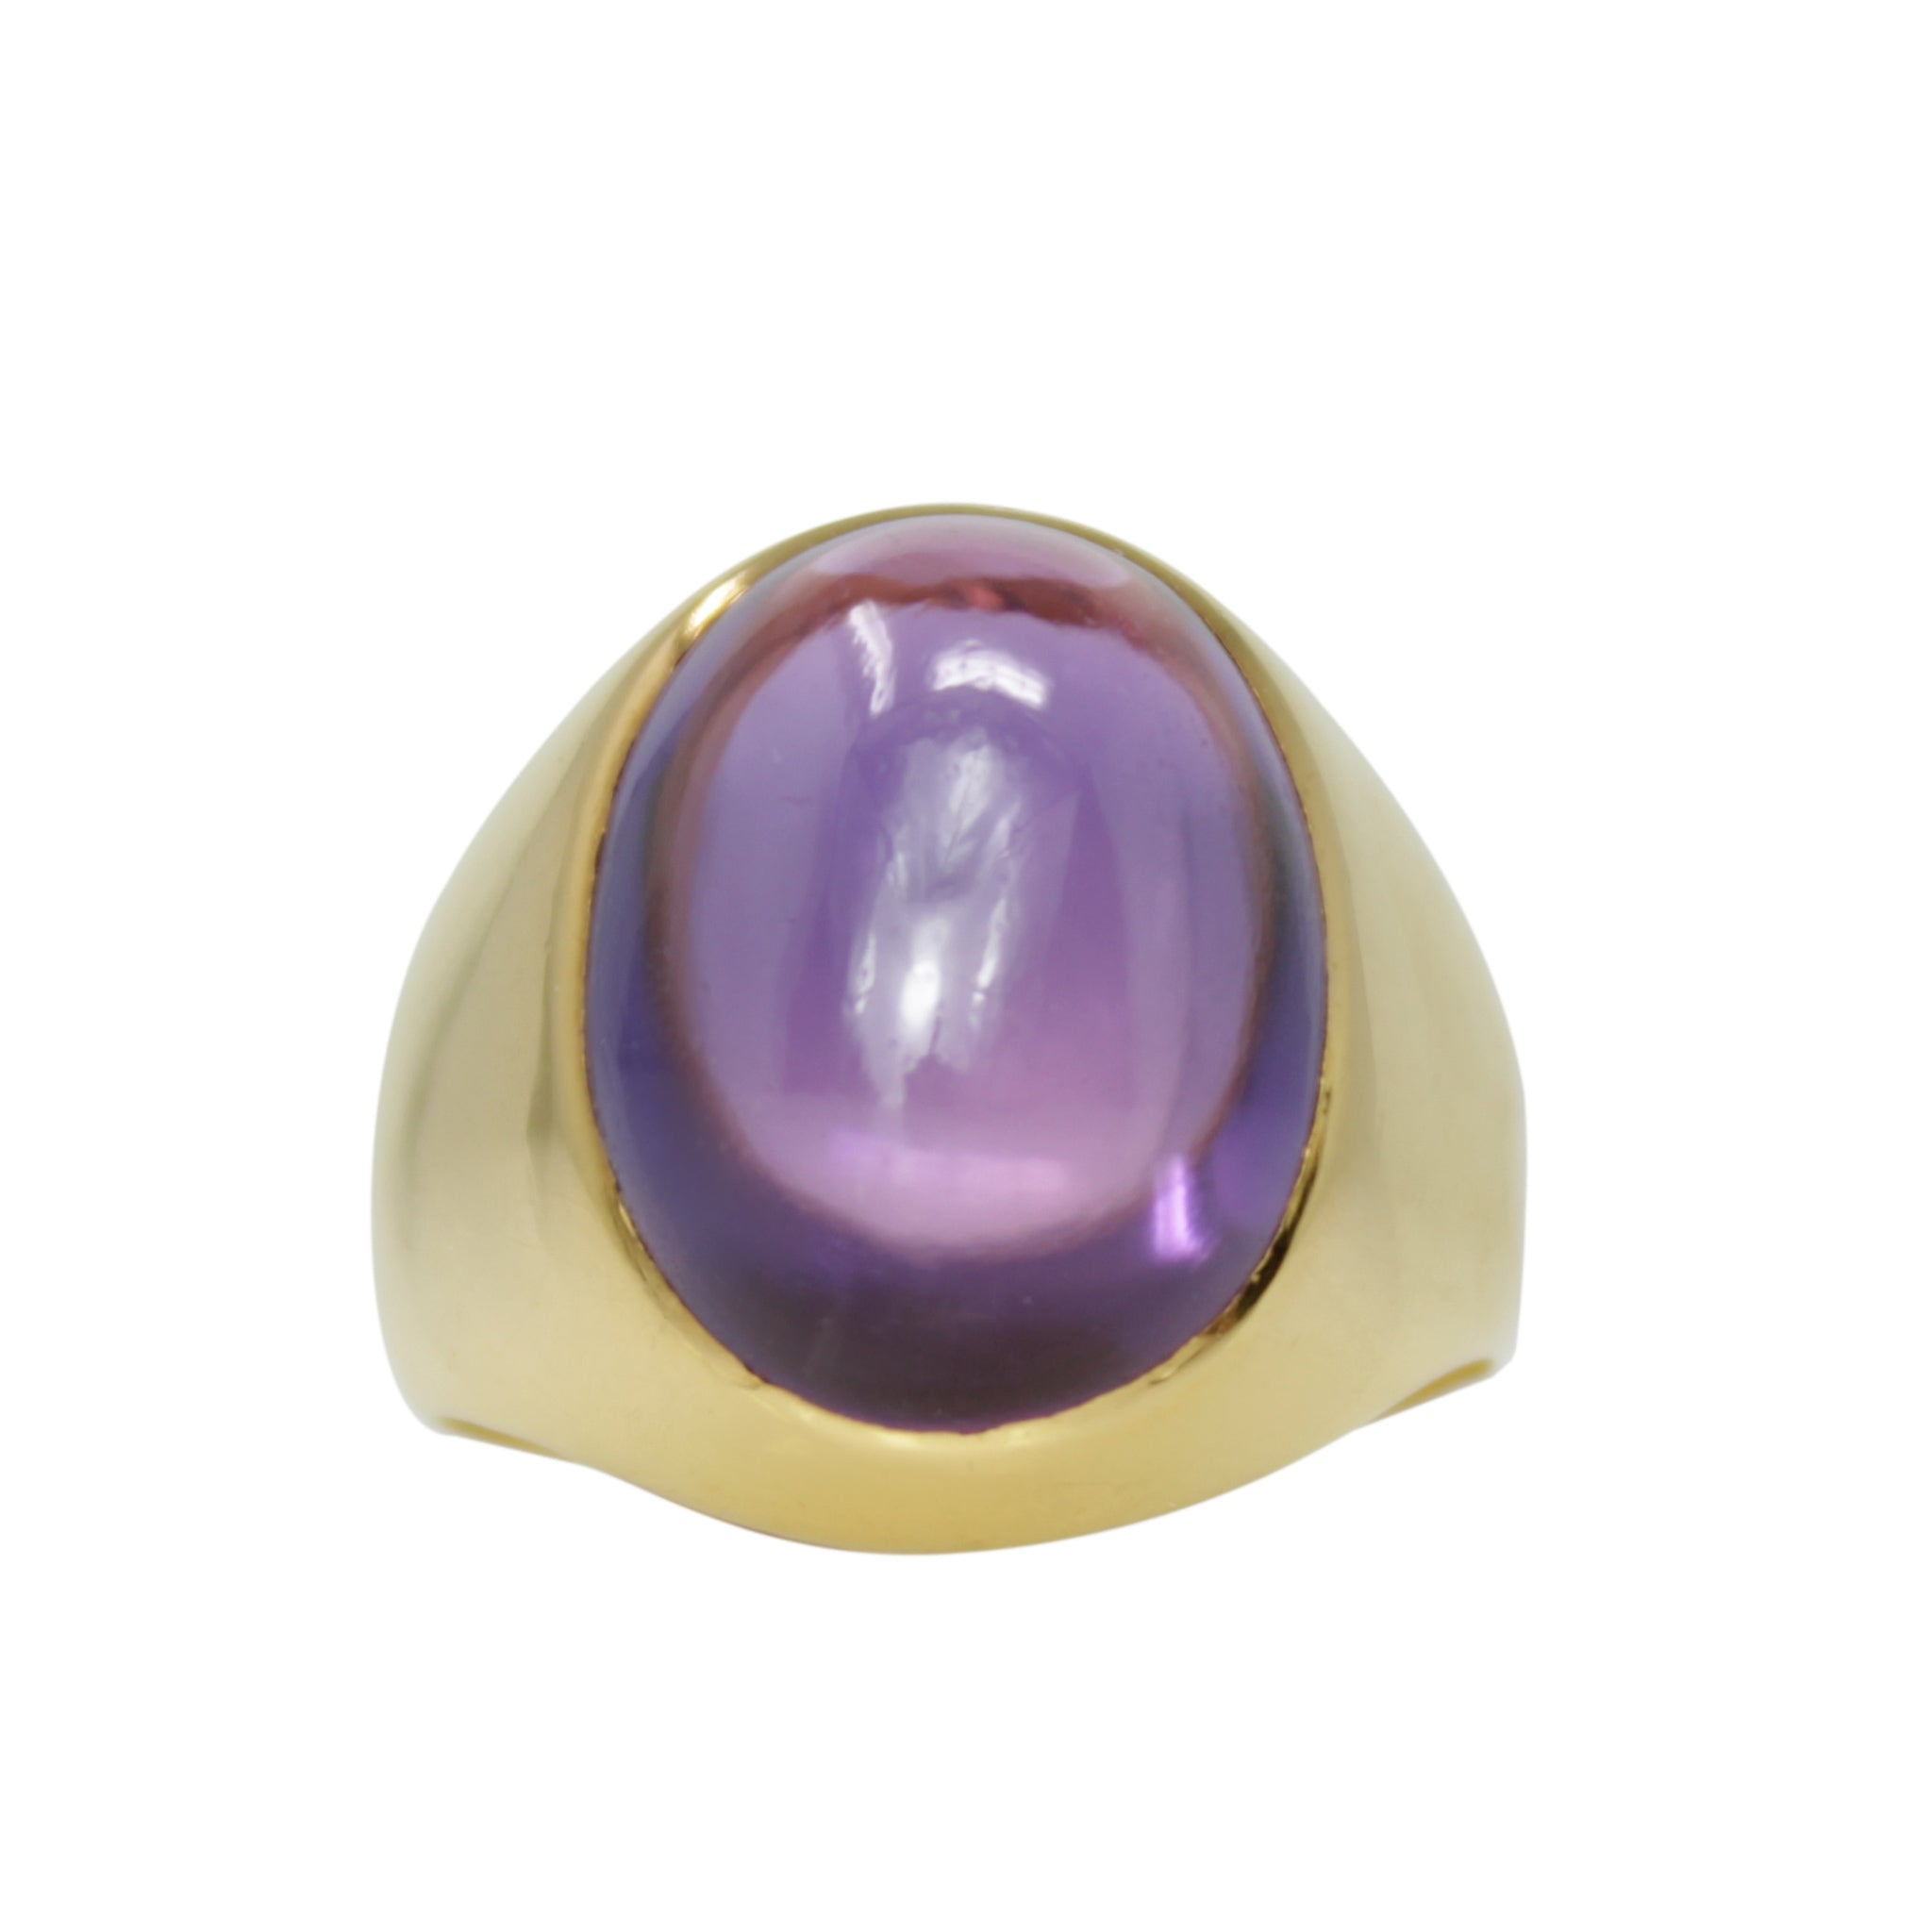 Connect and Protect Ring - 18k Yellow Gold Cabochon Amethyst Ring